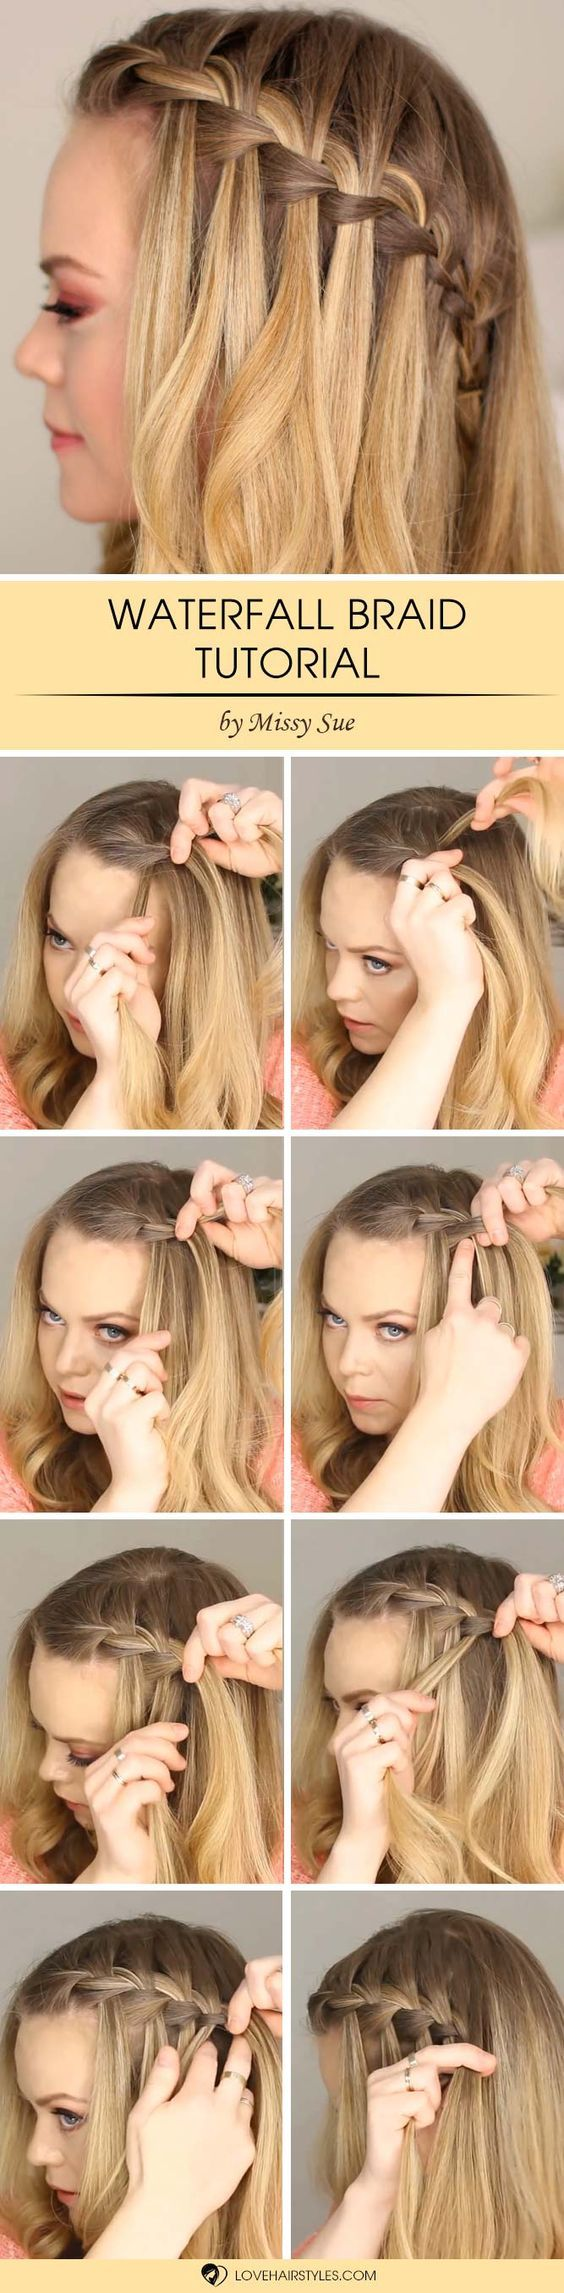 20 Waterfall Braid Tutorials Adding Beautiful Twists and Turns to Your Hair!